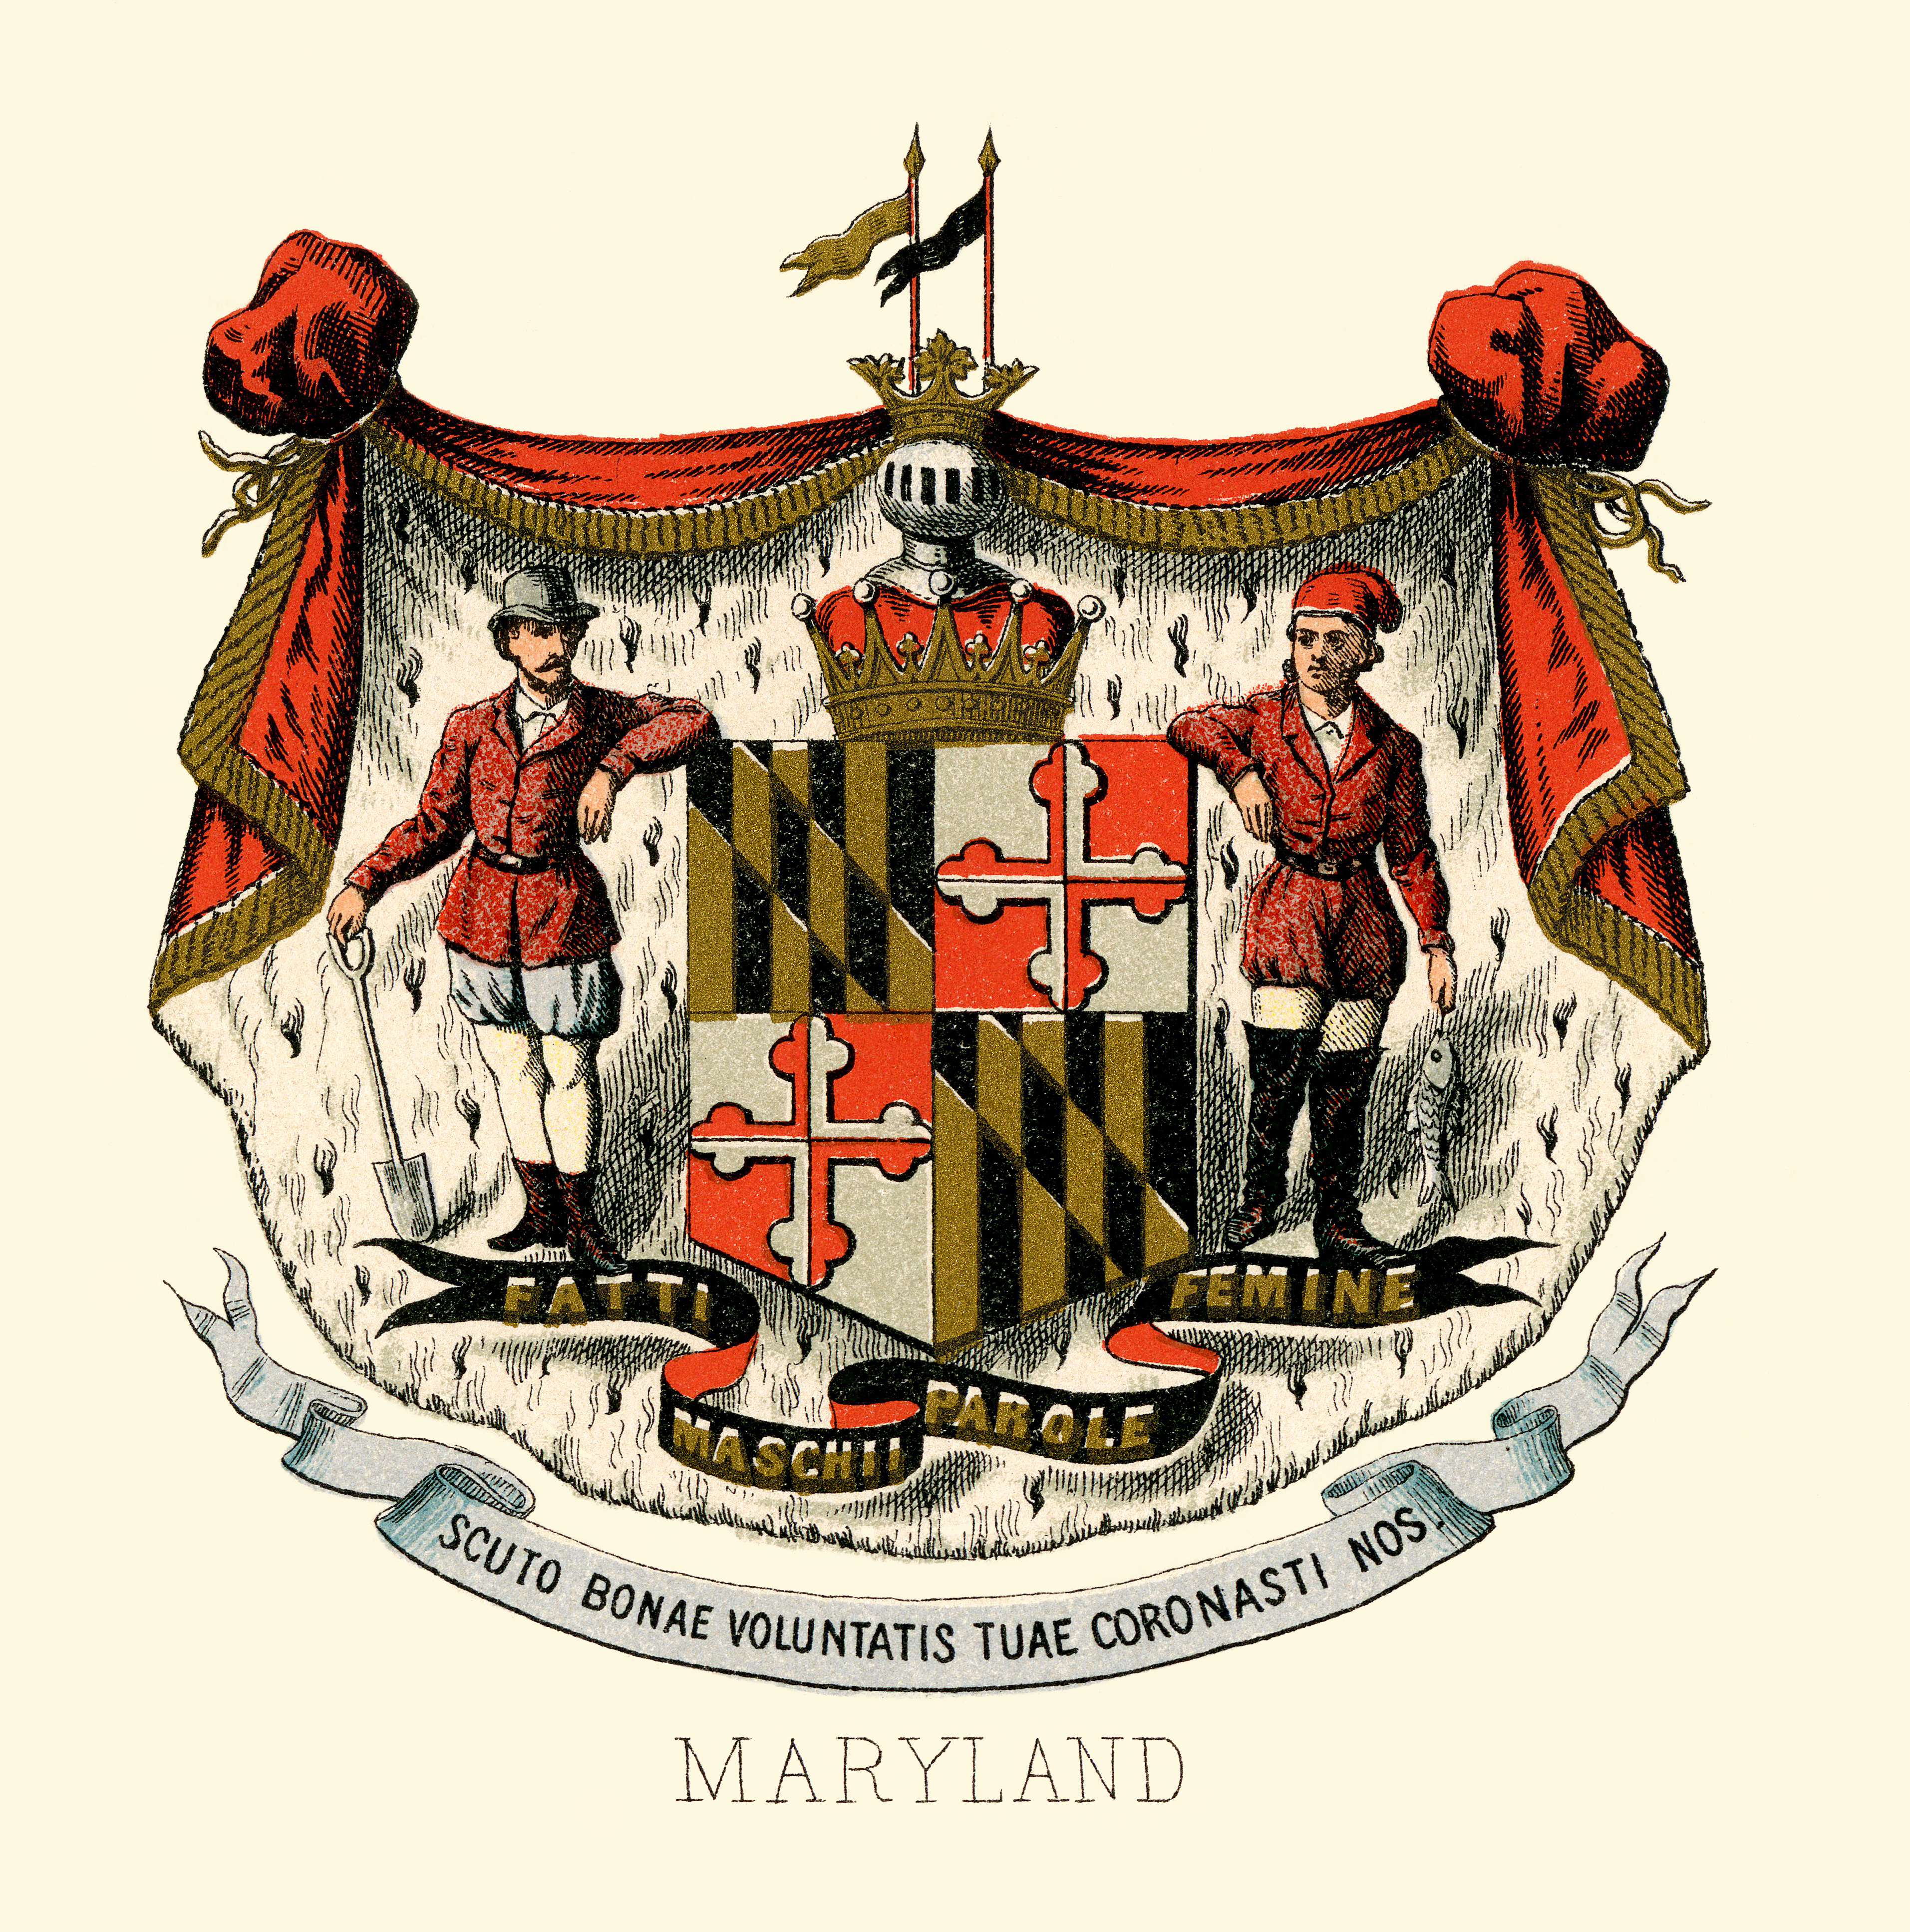 Maryland State Motto Translated Wiring Diagrams